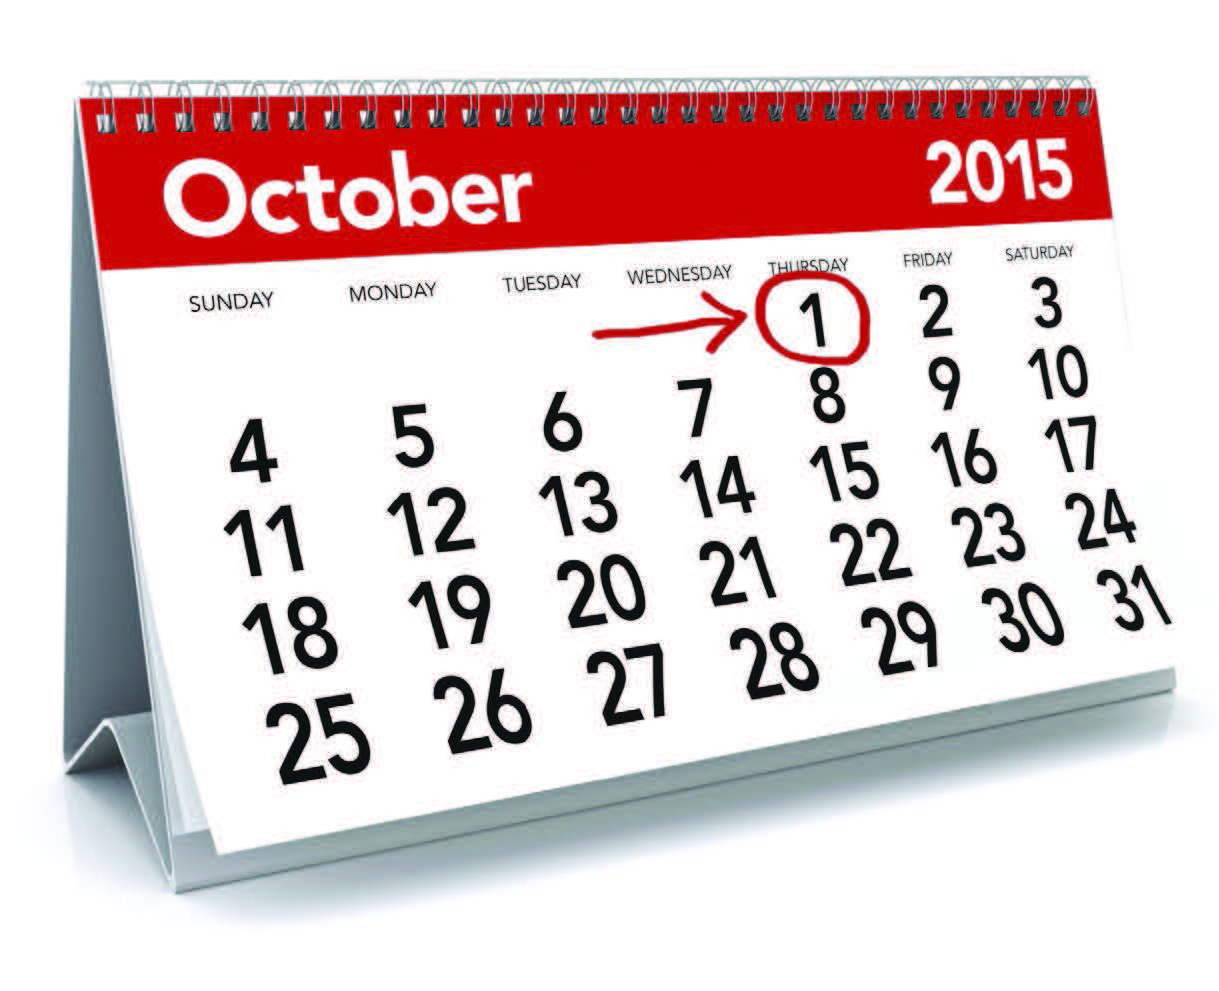 Calendar with october 1st circled